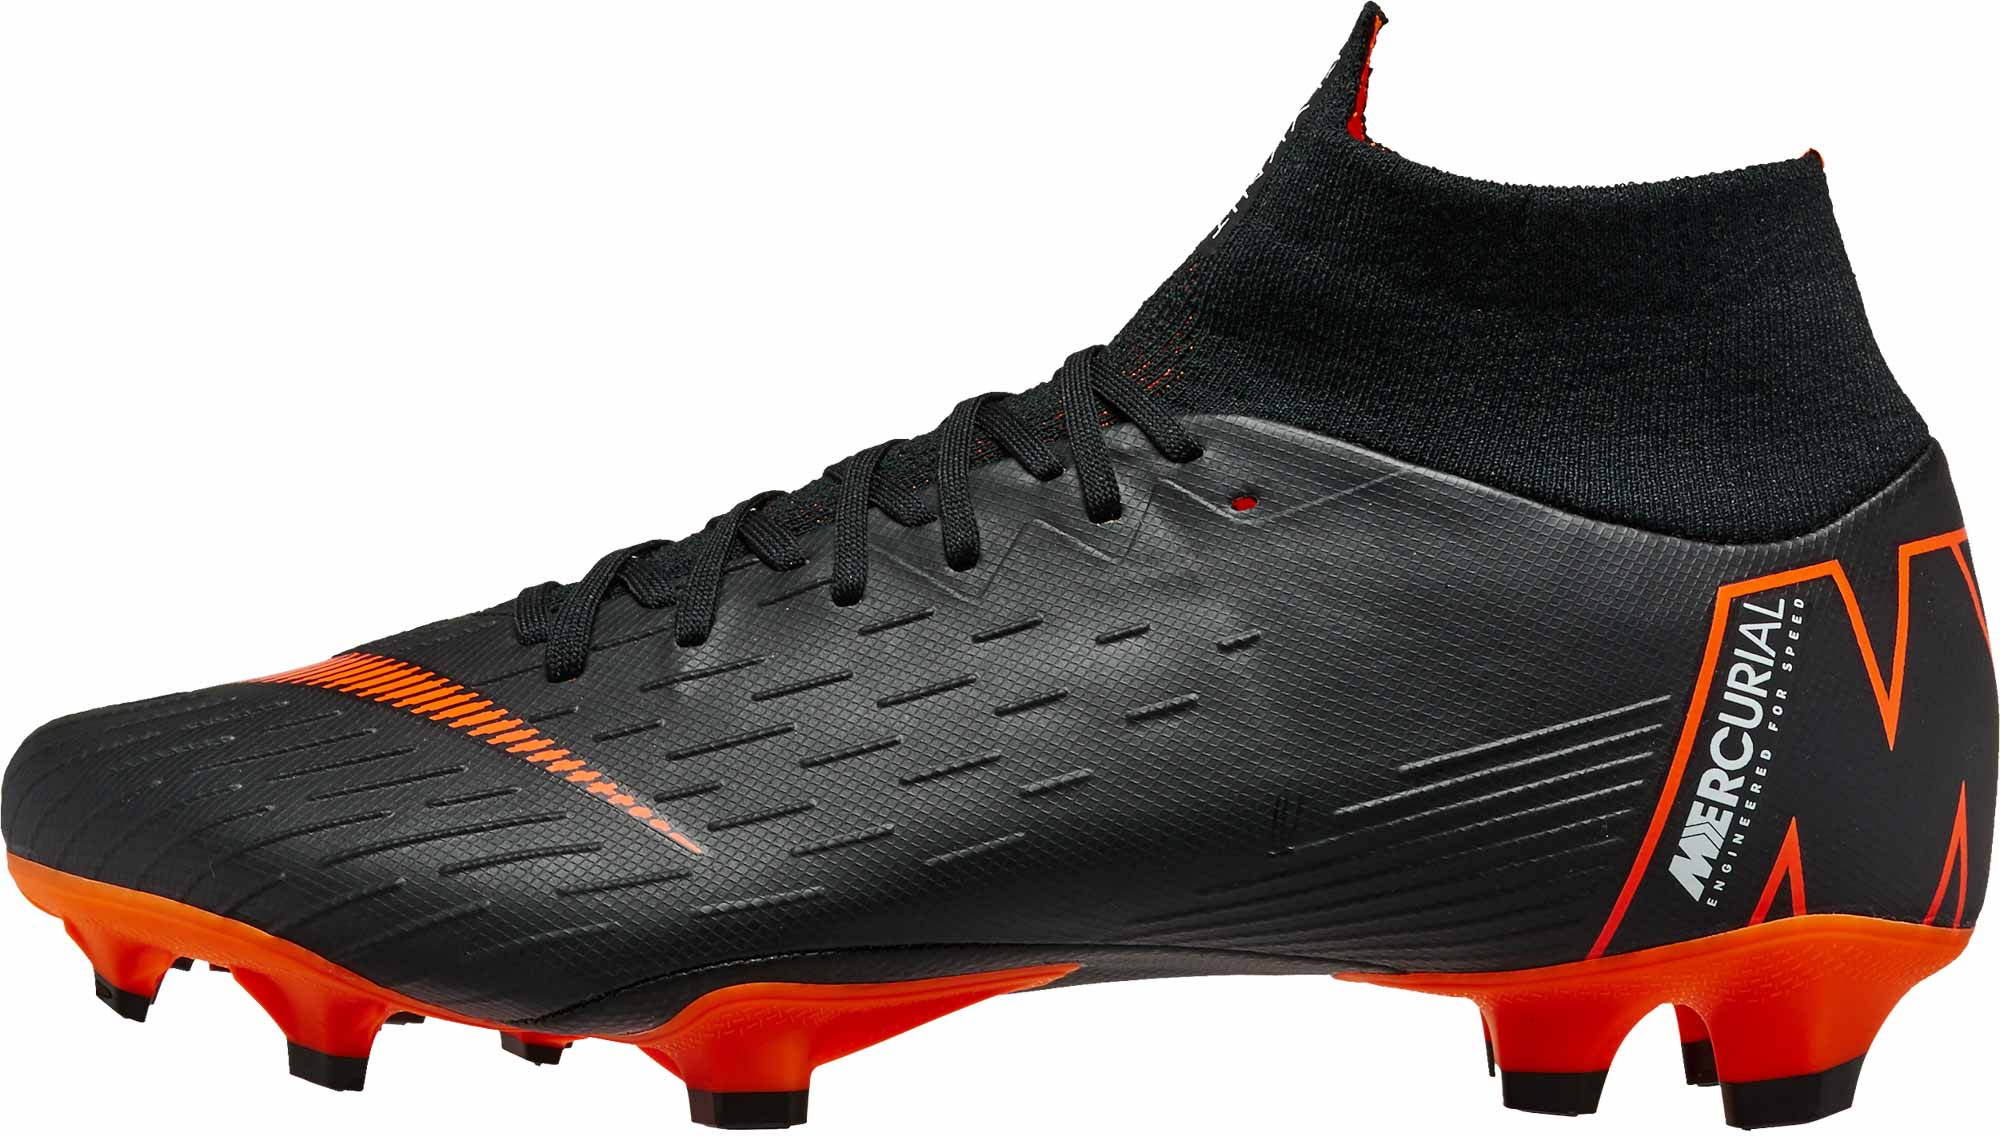 24019c0b0 Reviewing the Nike Mercurial Superfly 6 Pro - The Instep